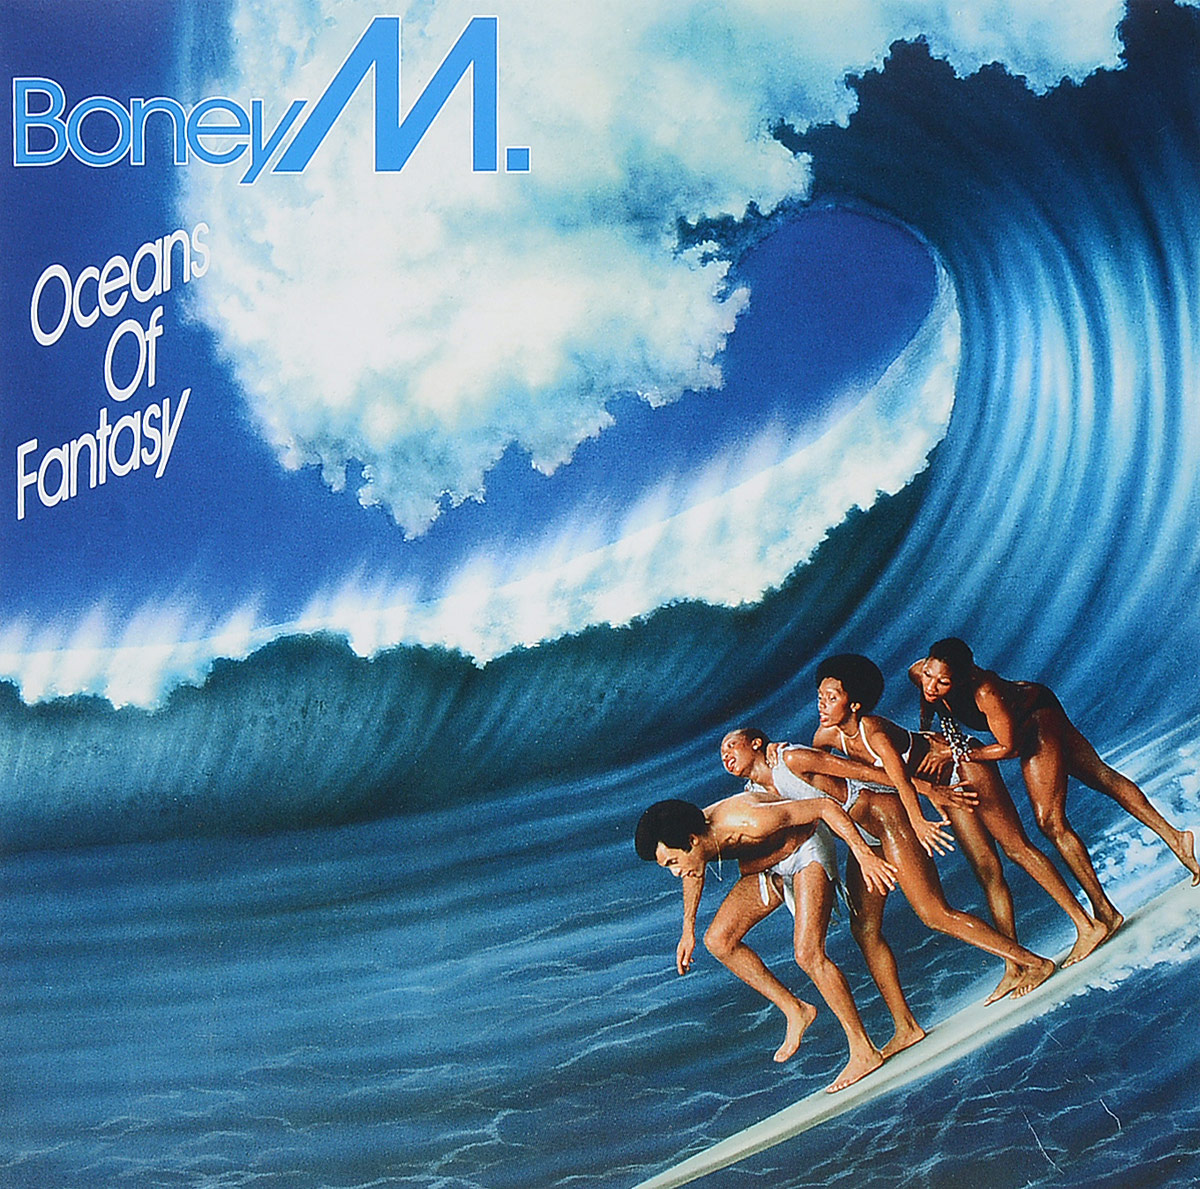 Boney M Boney M. Oceans Of Fantasy (LP) boney m boney m christmas with boney m lp